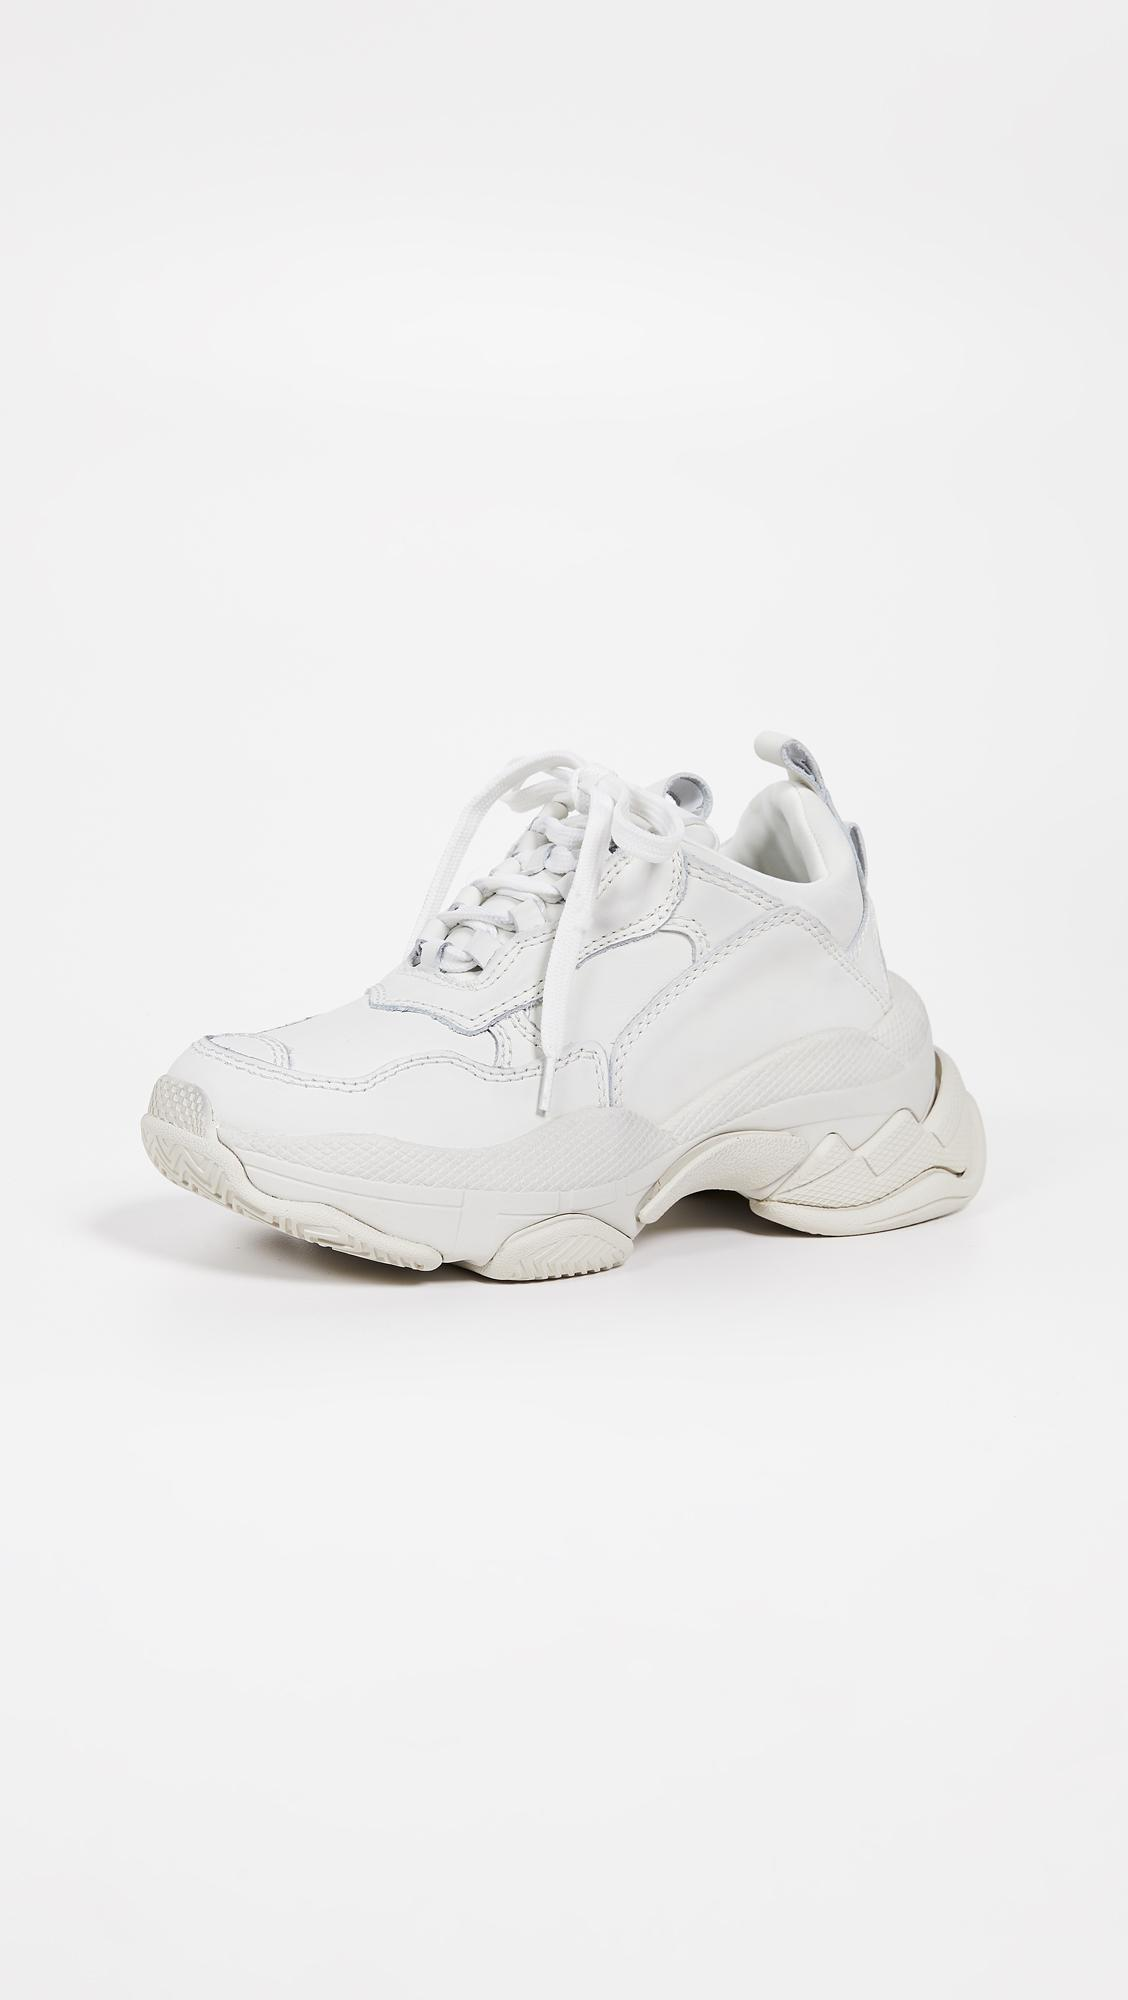 Jeffrey Campbell Lo-fi Sneakers in White